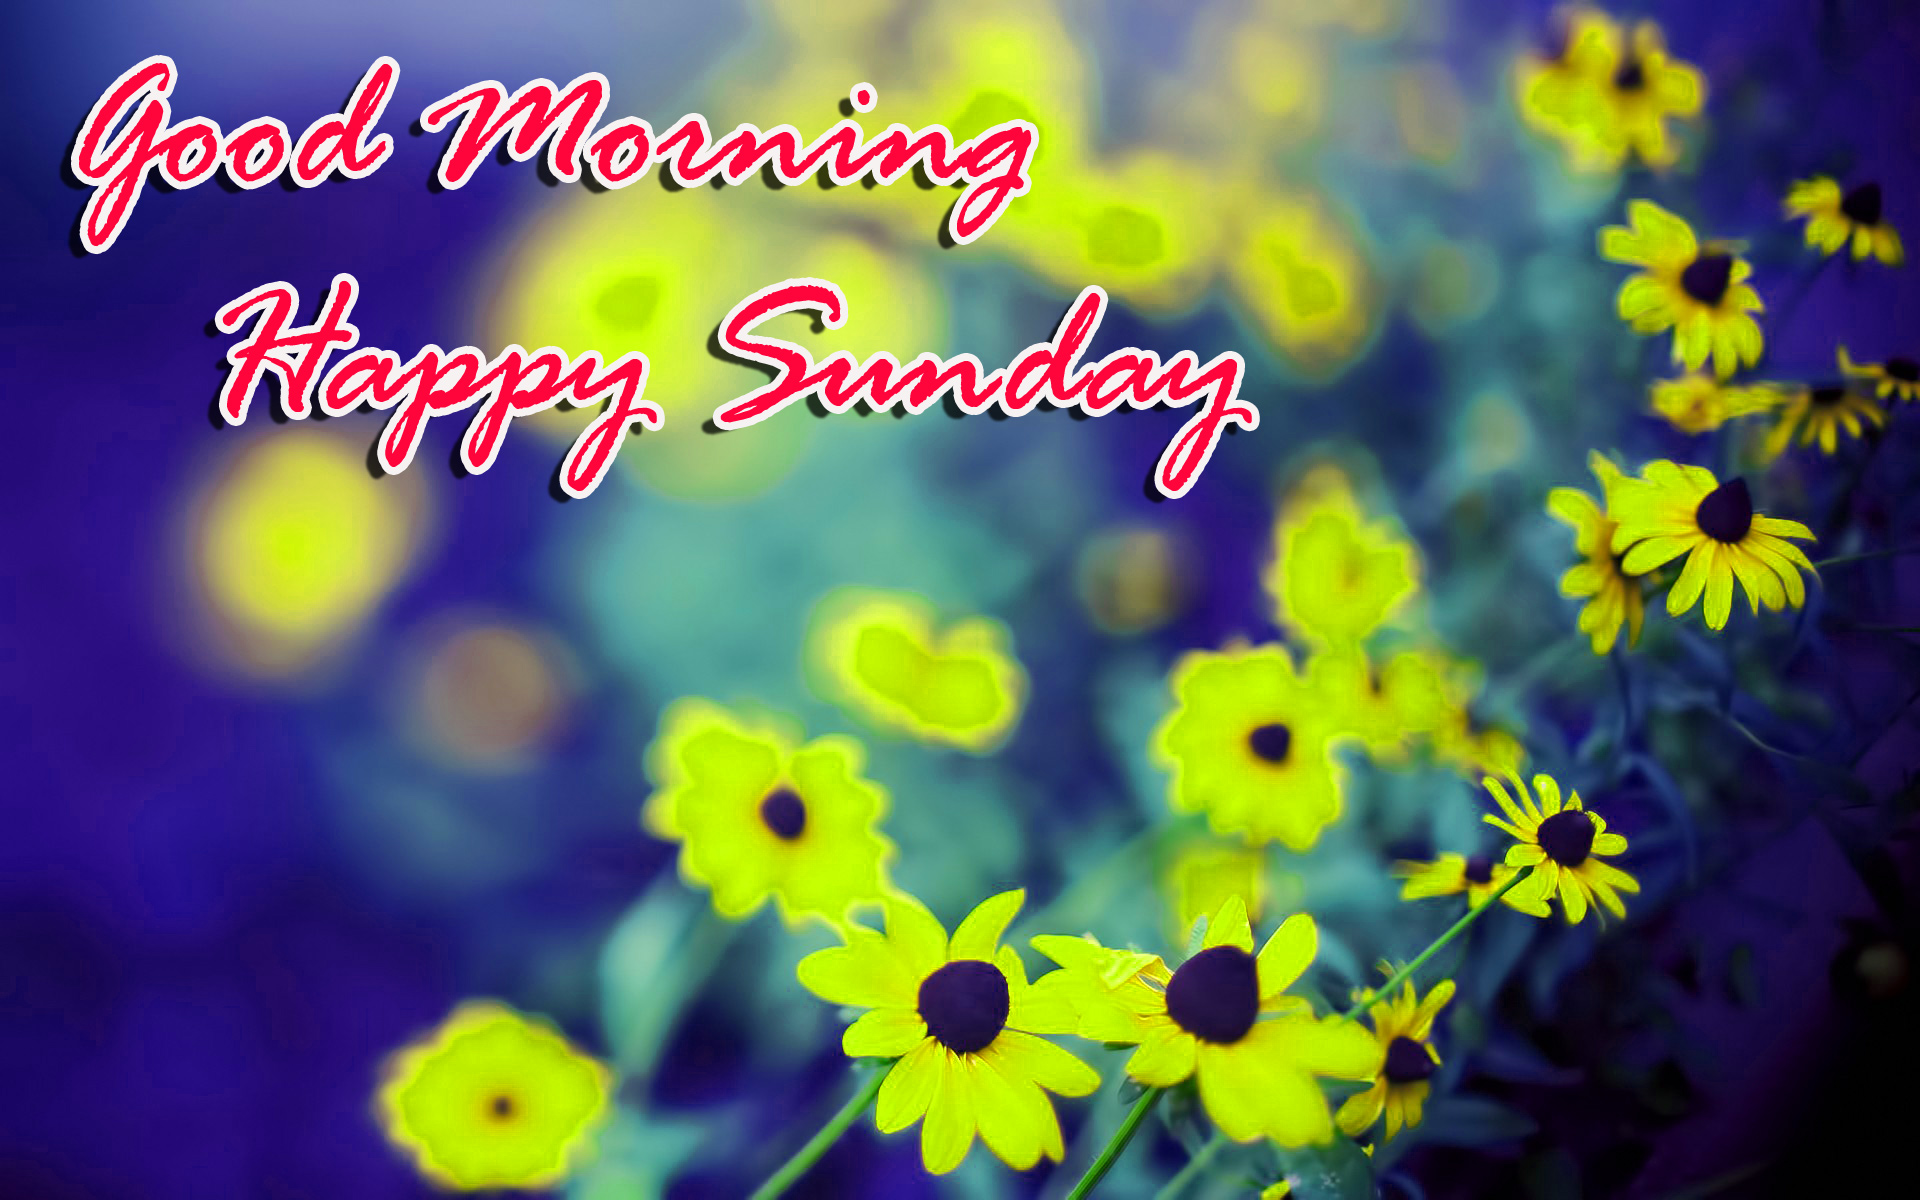 Sunday Good Morning Wallpaper Pictures Pics Download